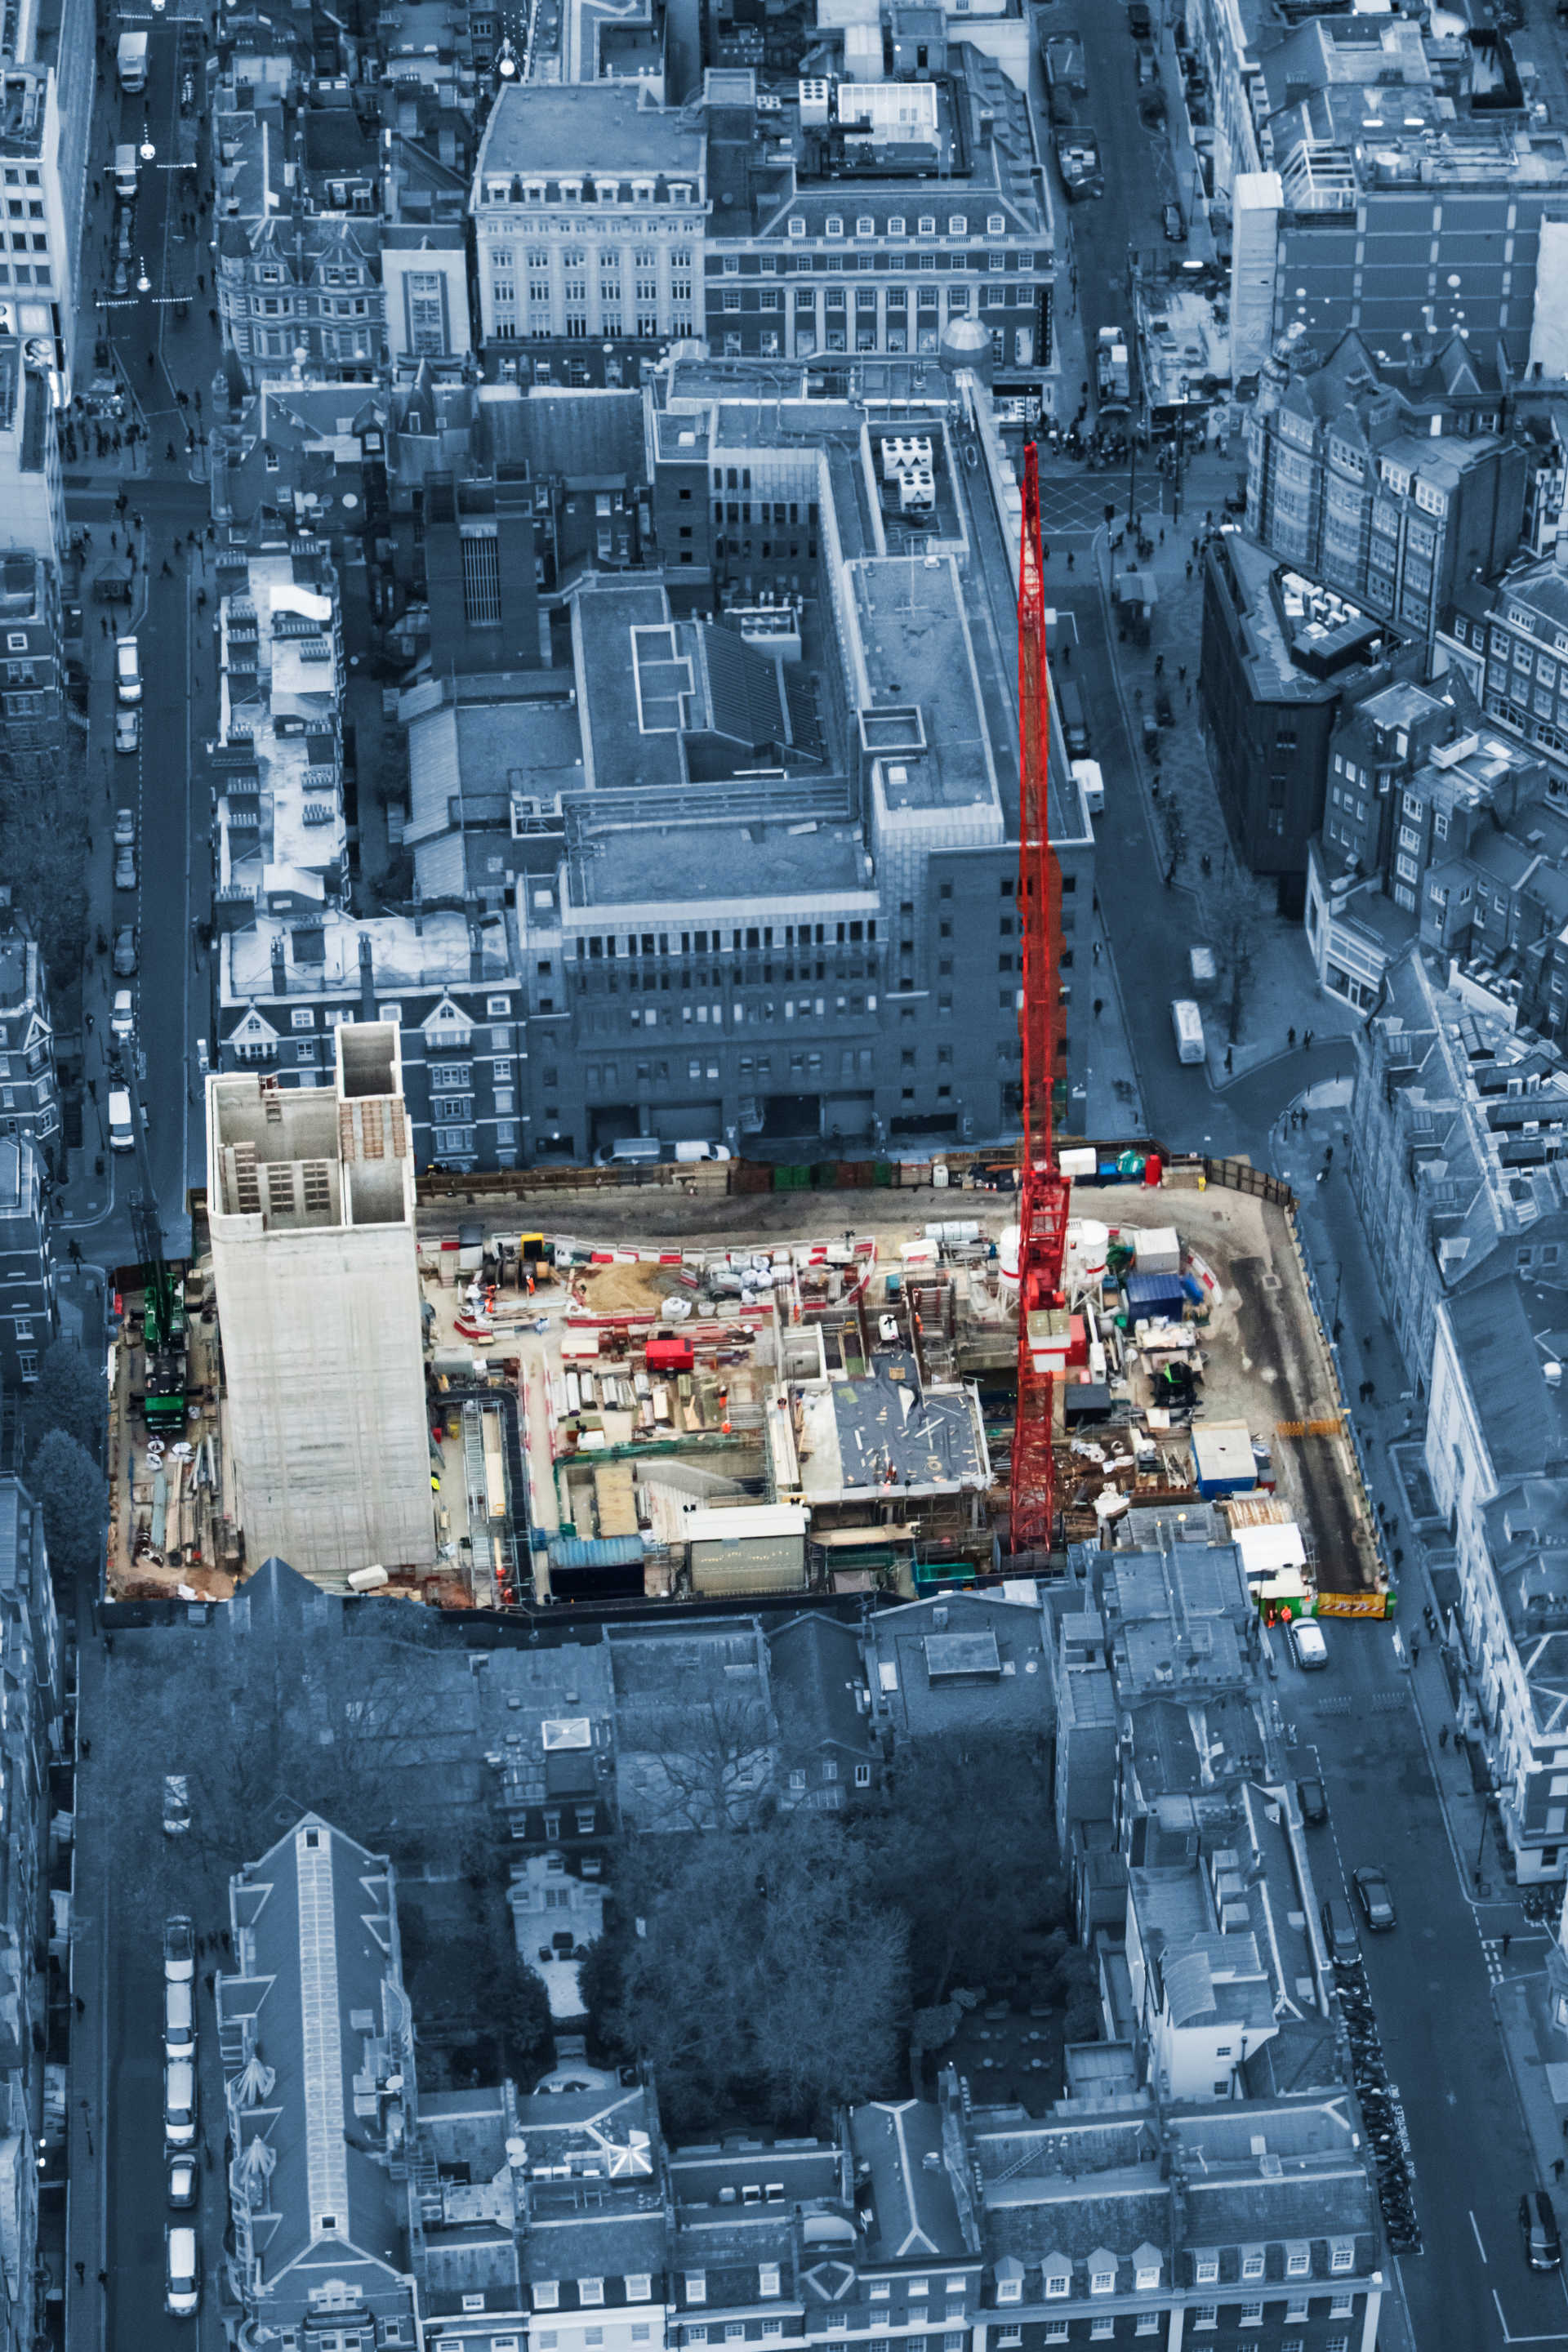 Aerial photograph of Dean Street Crossrail worksite